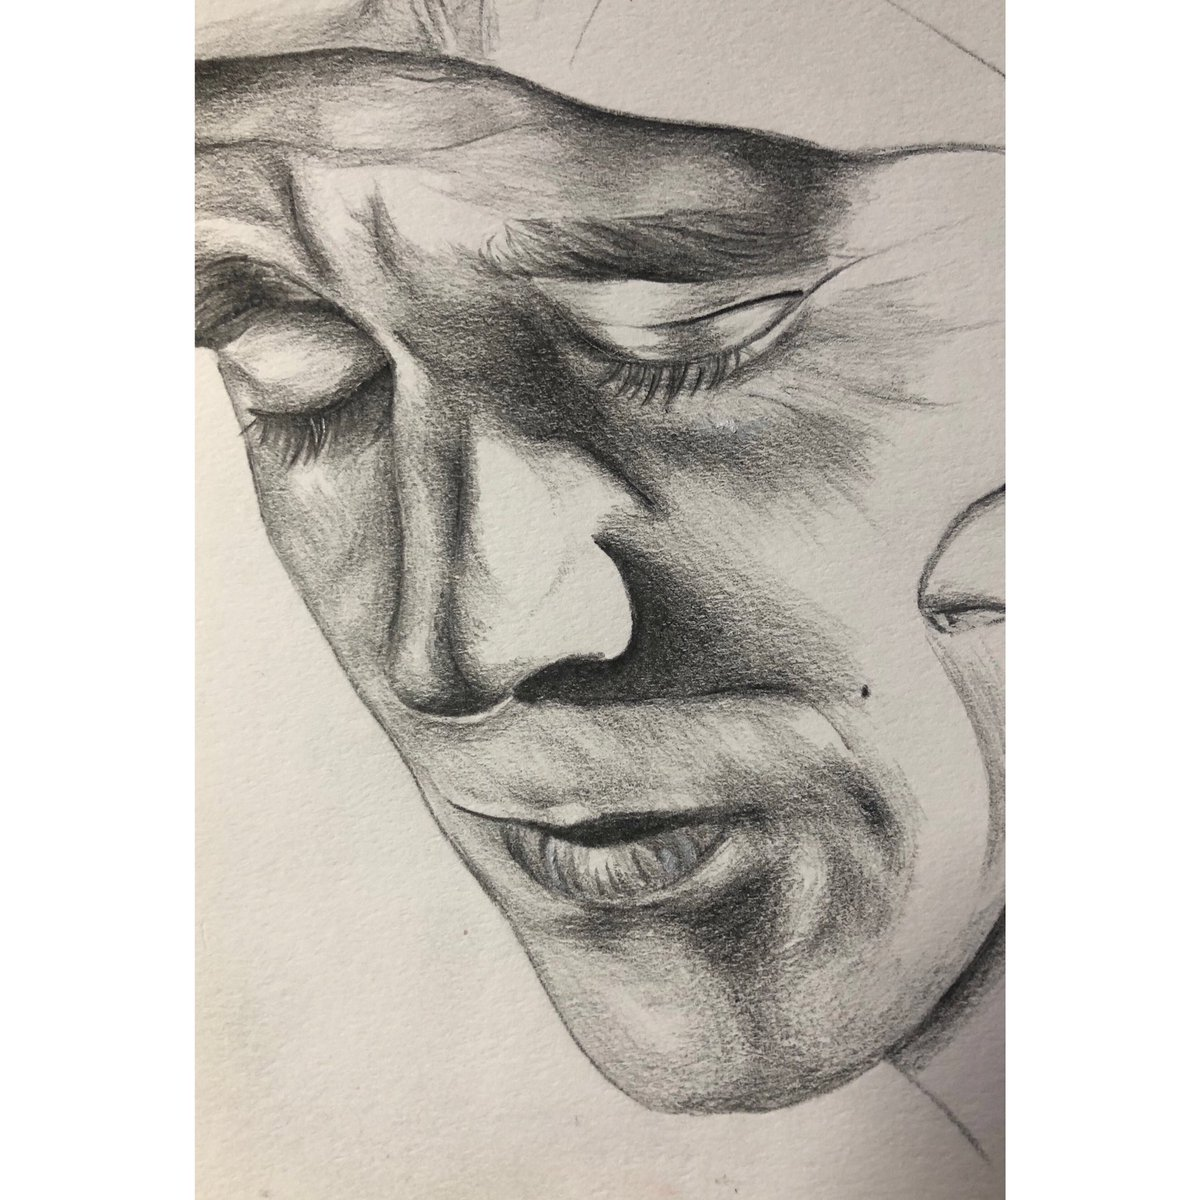 A current WIP (work in progress) #art #drawing #tomhiddleston